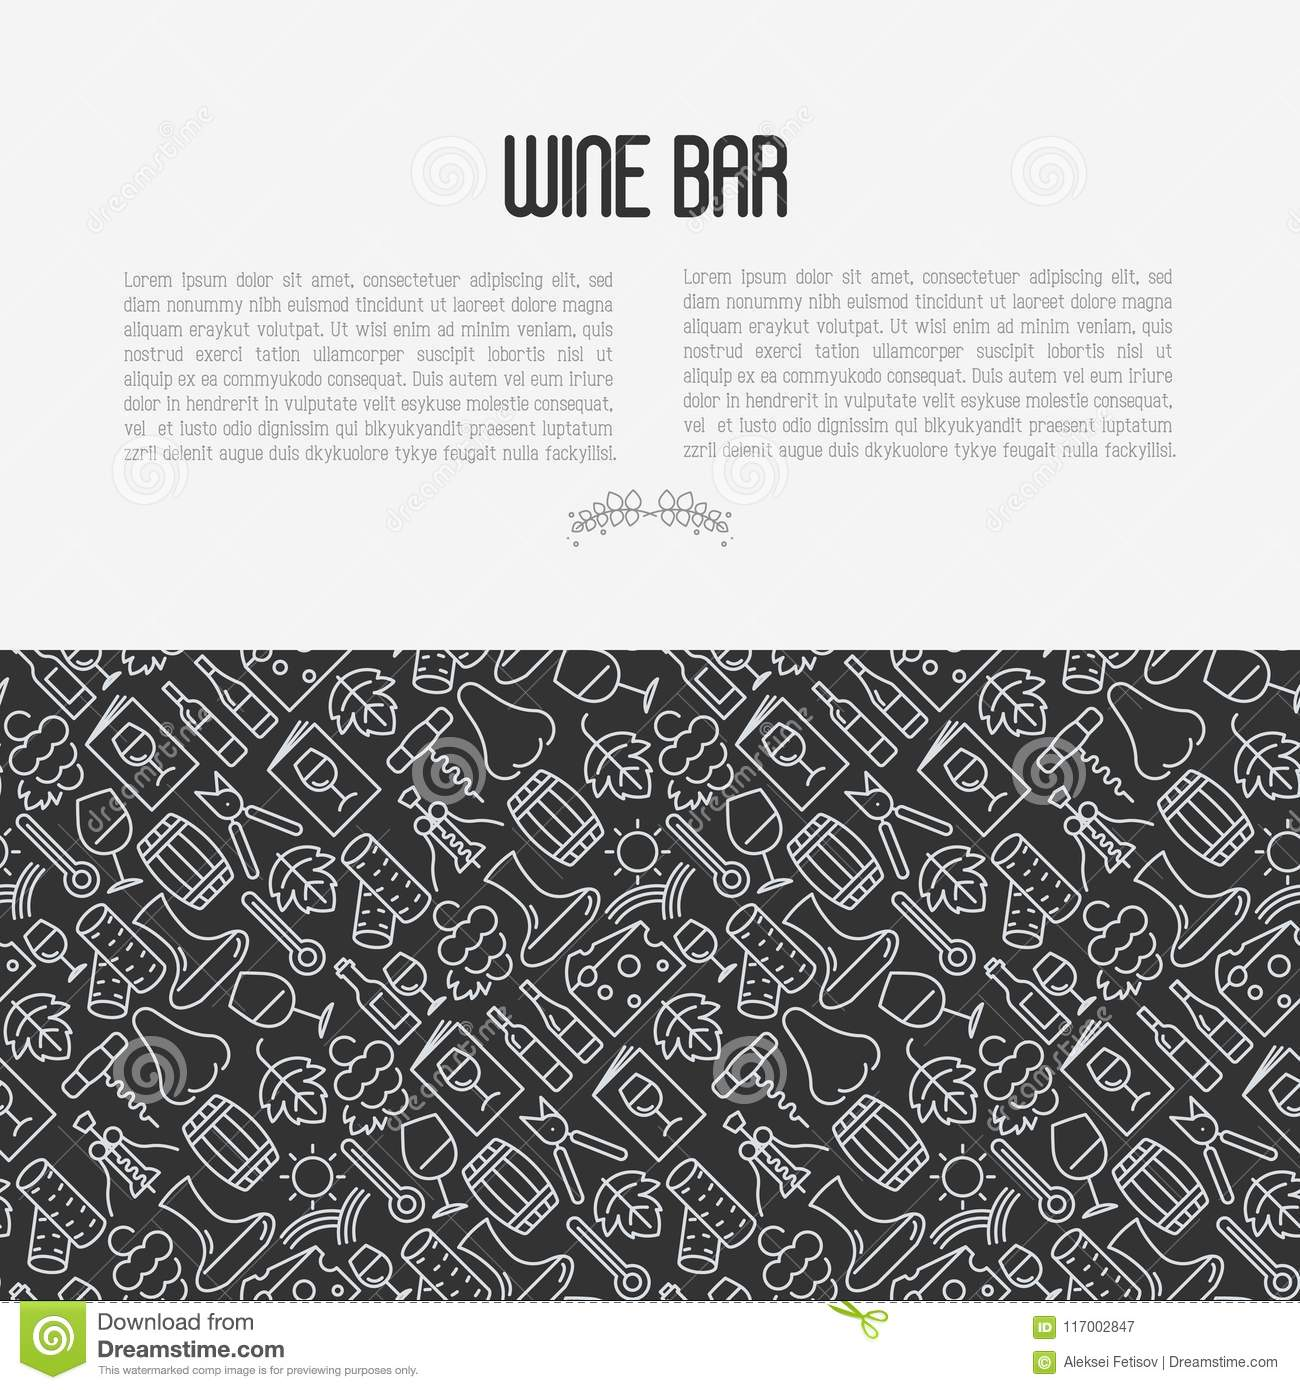 wine bar concept for restaurant menu stock vector illustration of